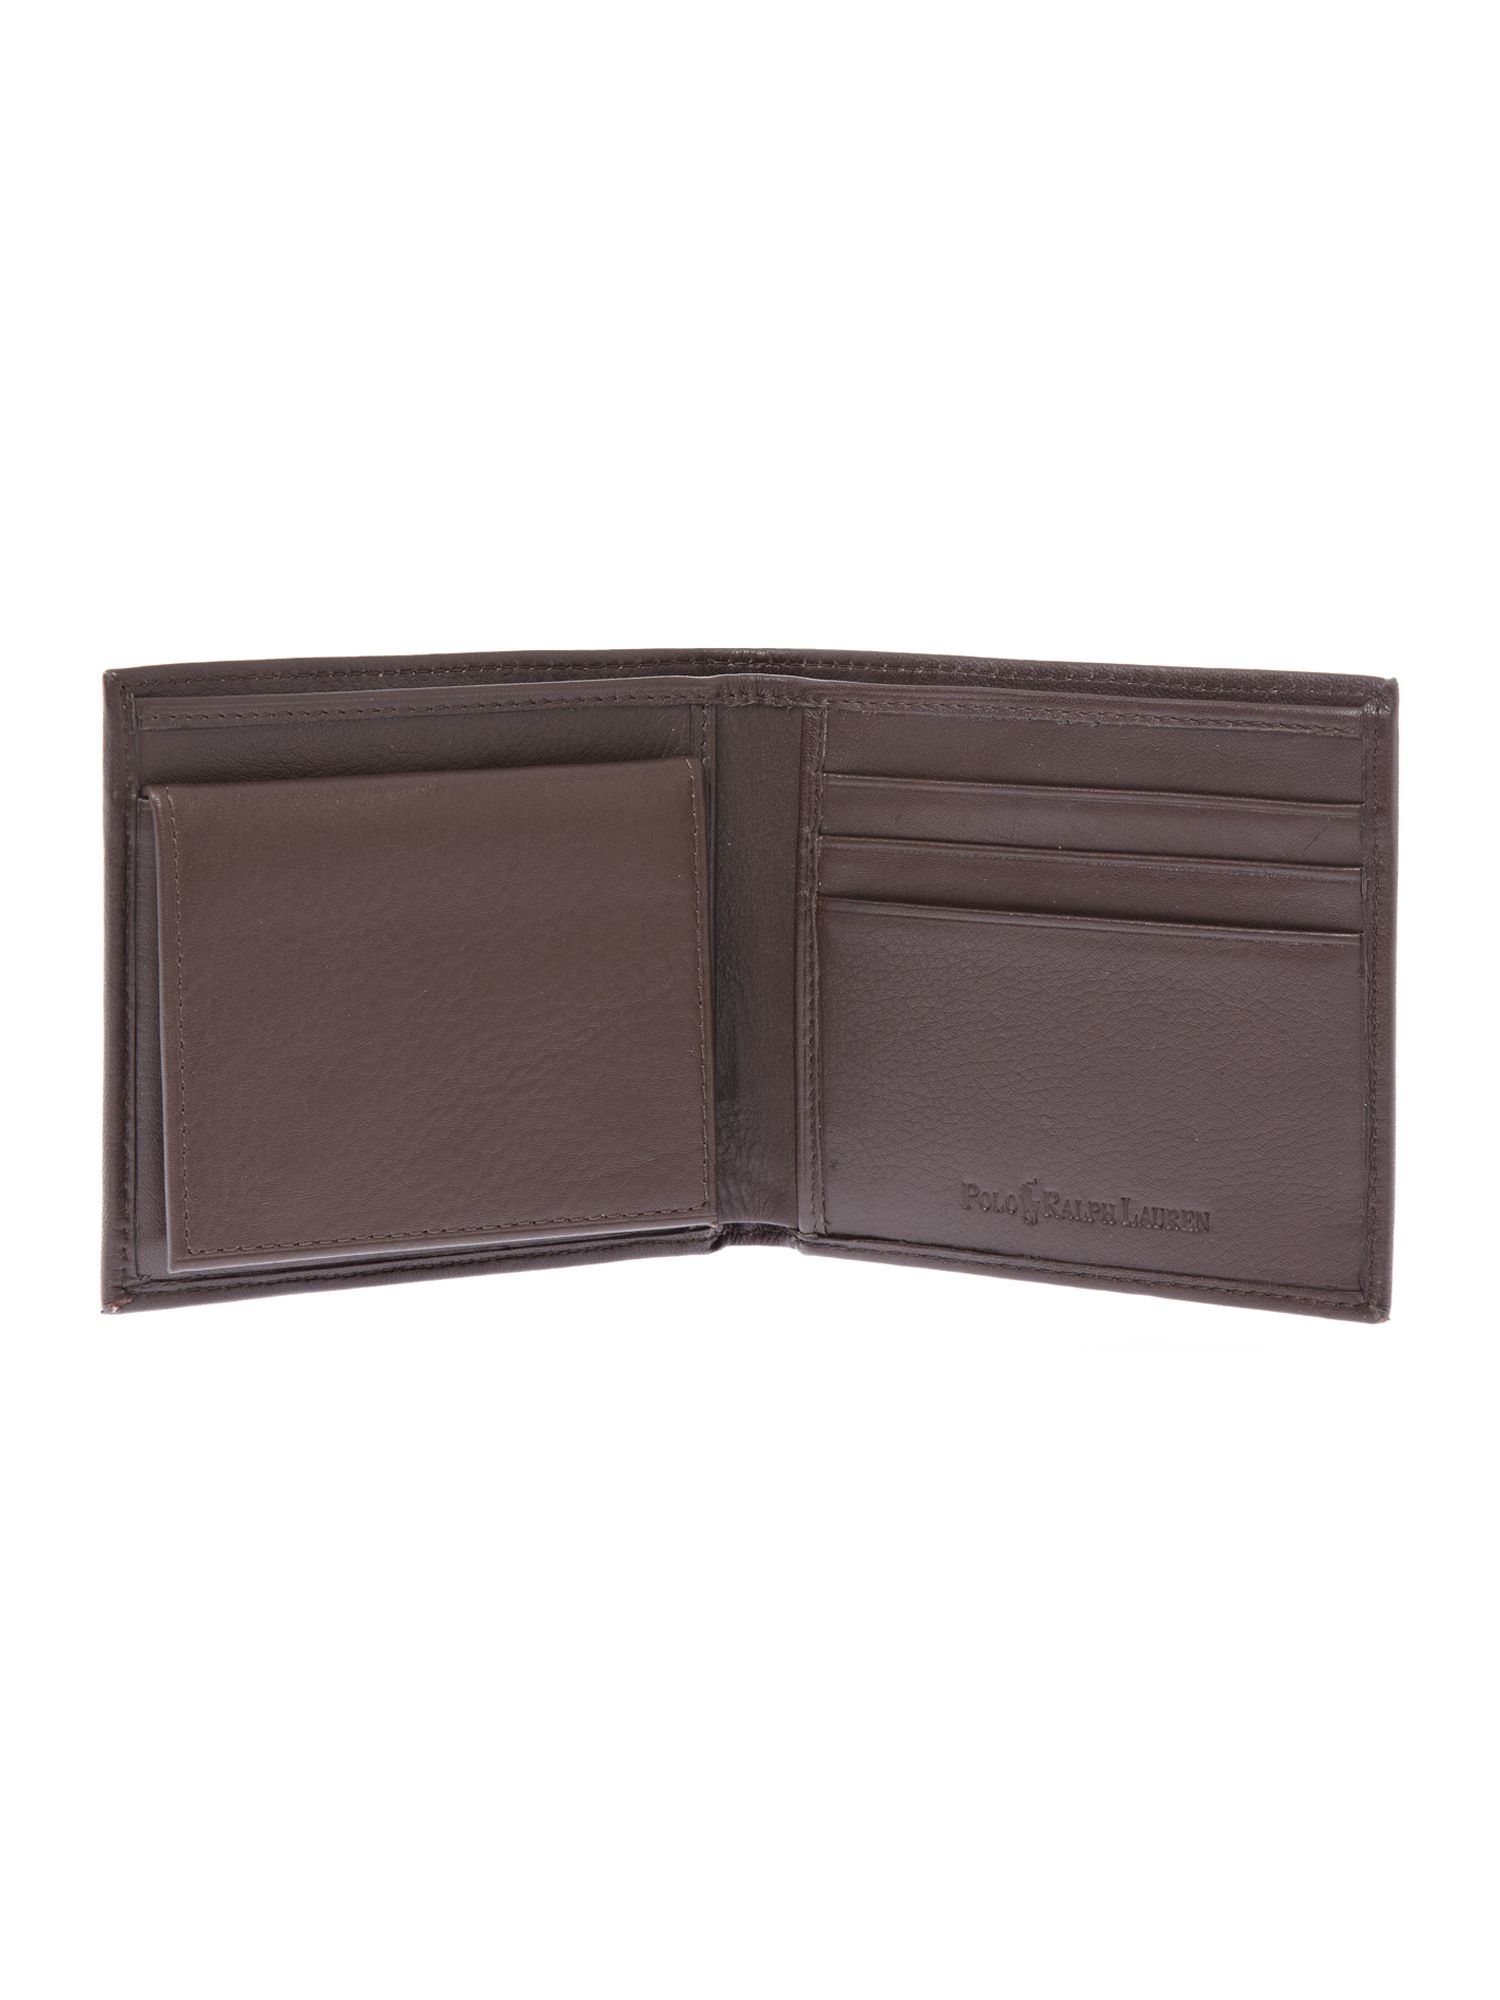 Exclusive pebbled leather wallet